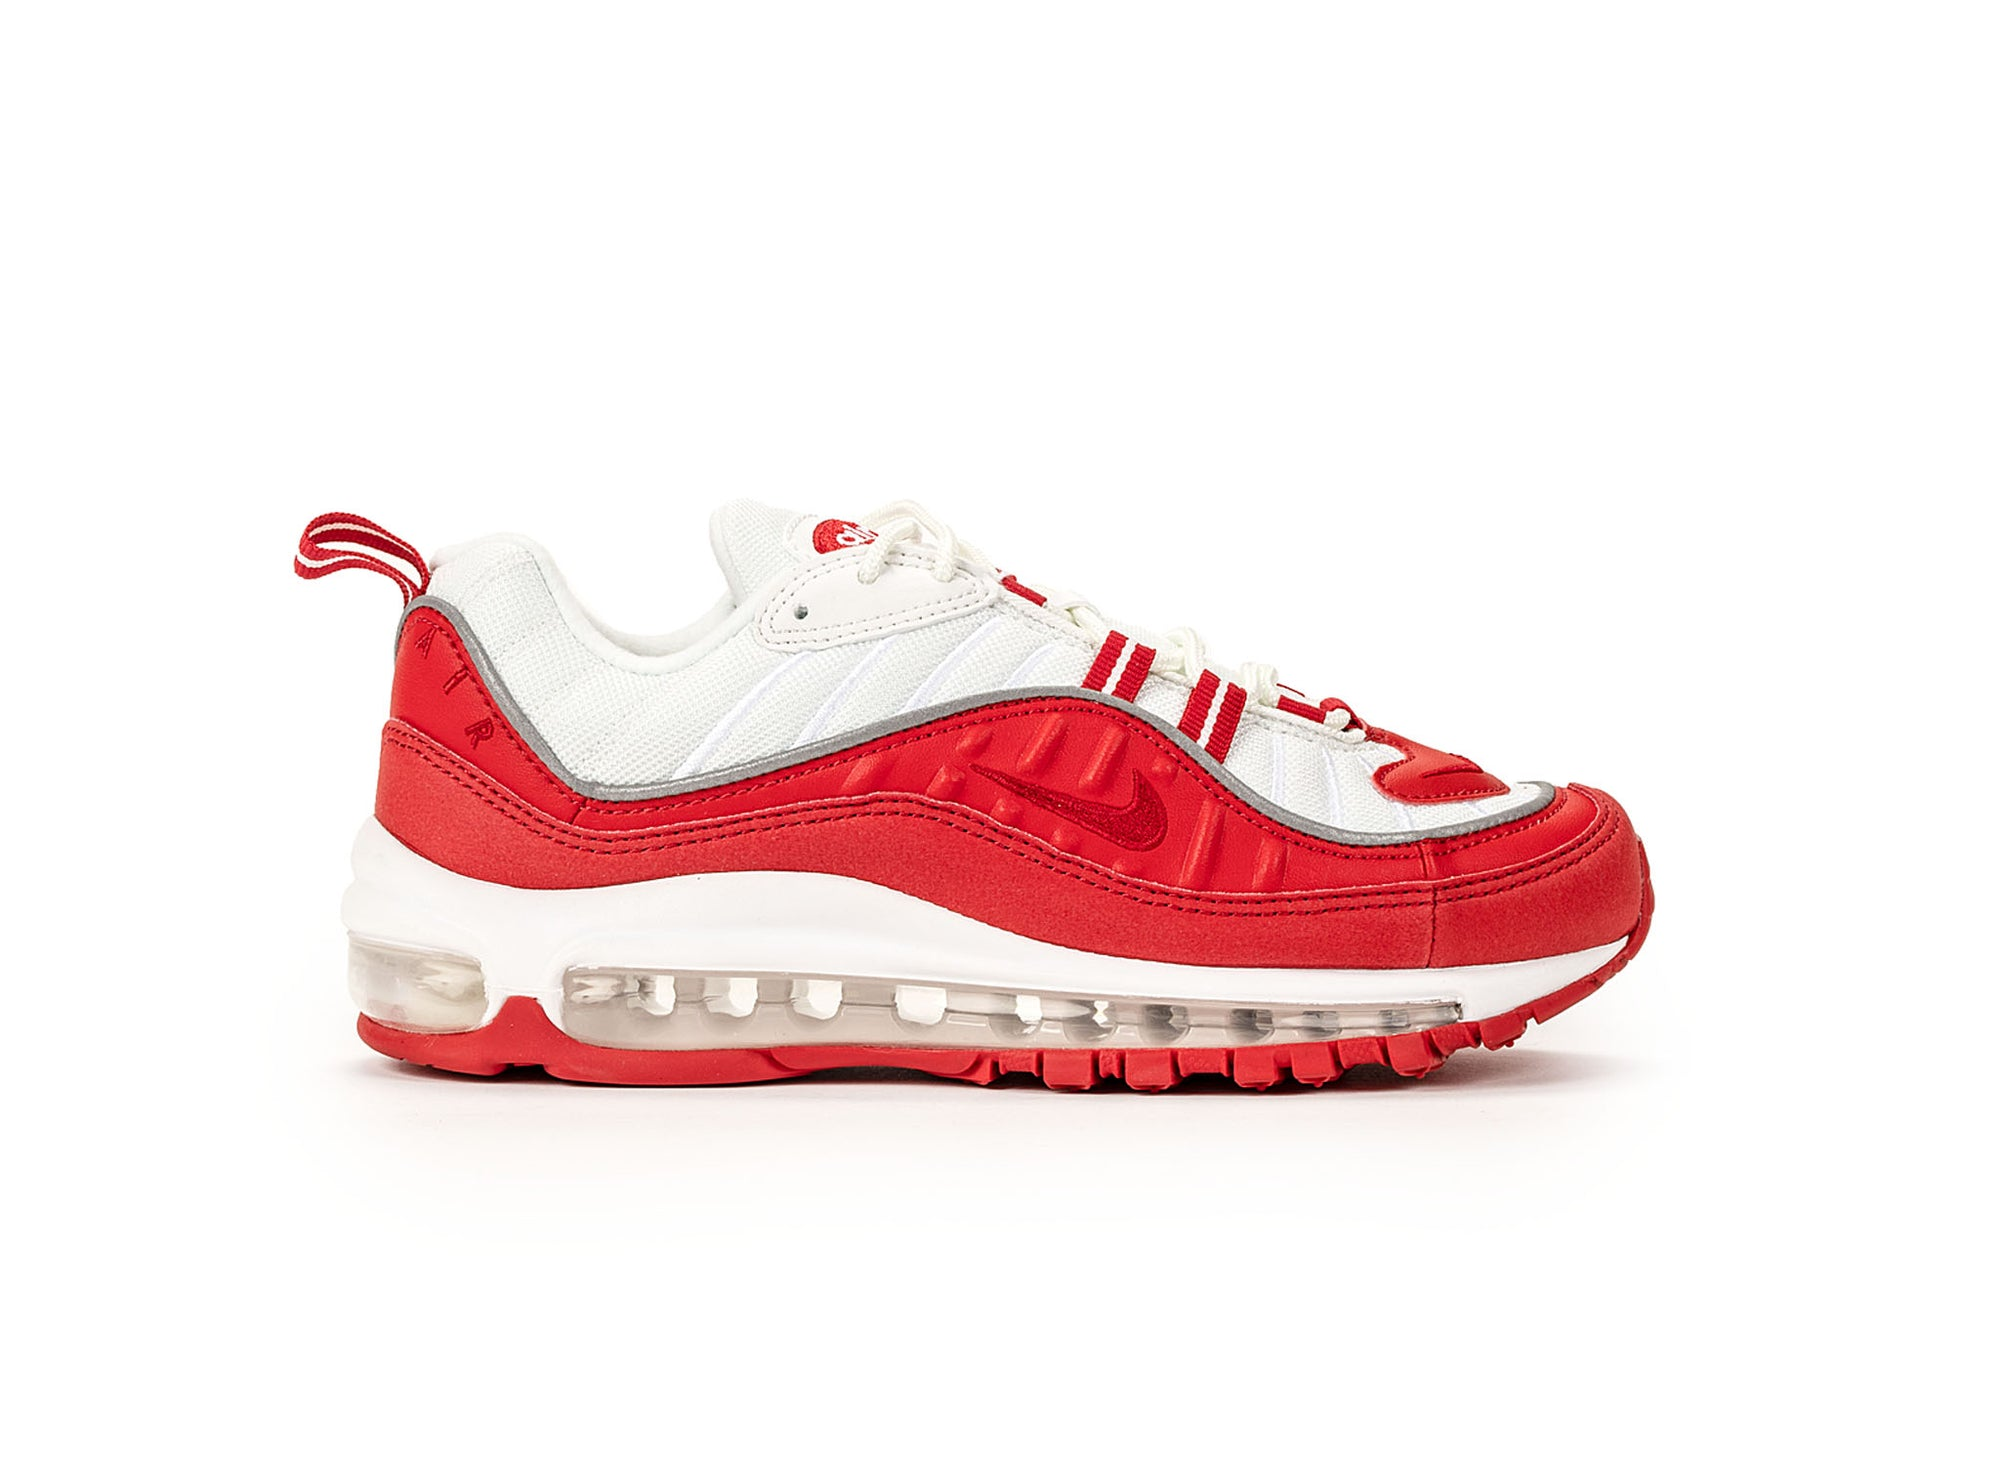 Nike Air Max 98 GS - University Red